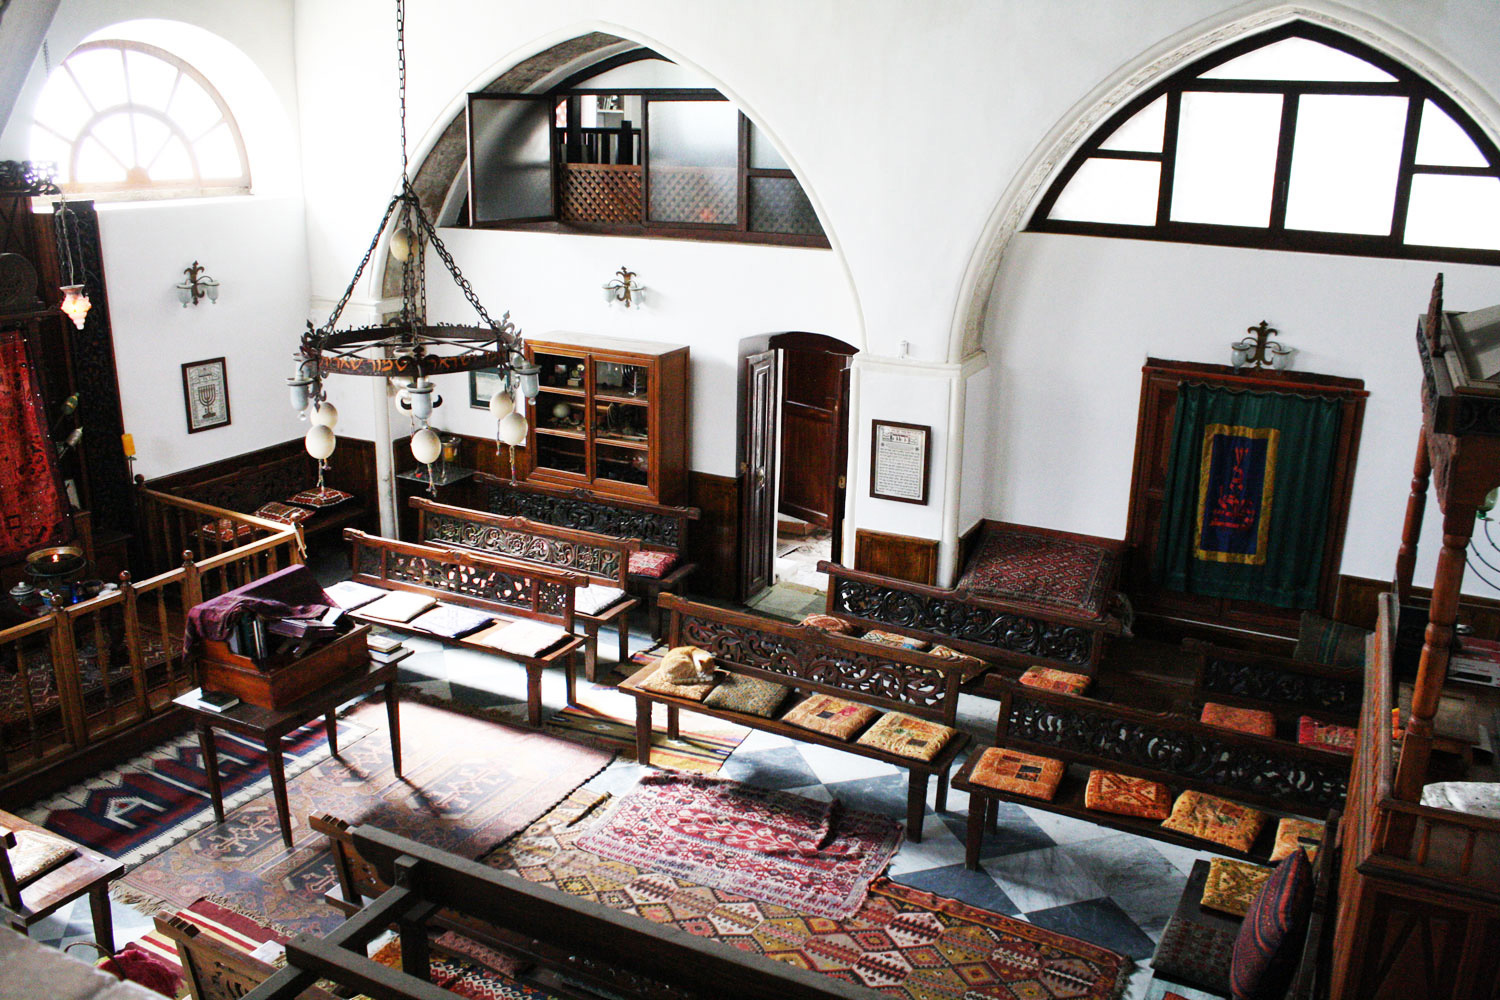 Praying room inside the synagogue from above